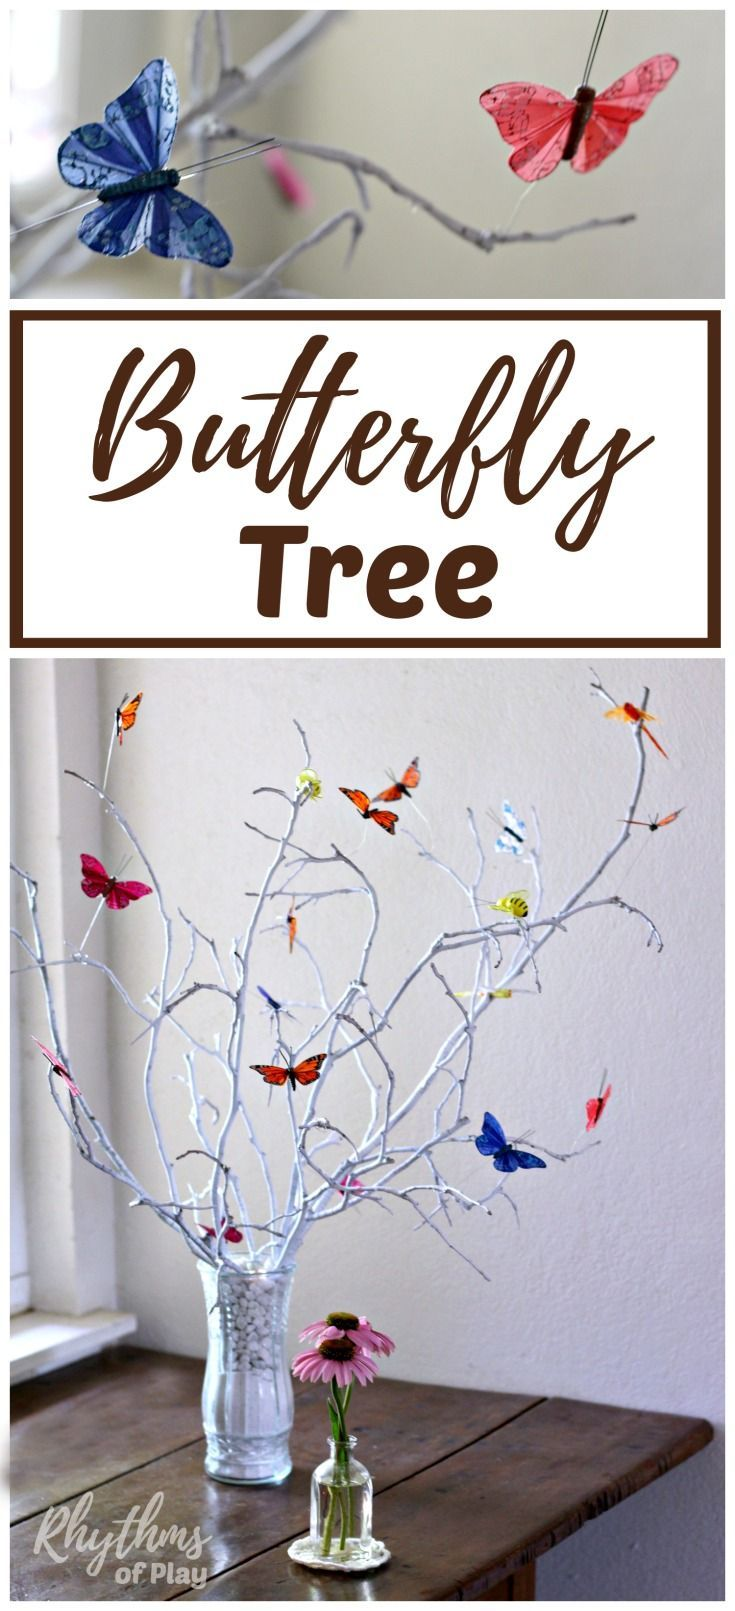 A DIY butterfly tree centerpiece is an easy craft that makes a lovely addition to your home decor or summer nature table. #style #shopping #styles #outfit #pretty #girl #girls #beauty #beautiful #me #cute #stylish #photooftheday #swag #dress #shoes #diy #design #fashion #homedecor